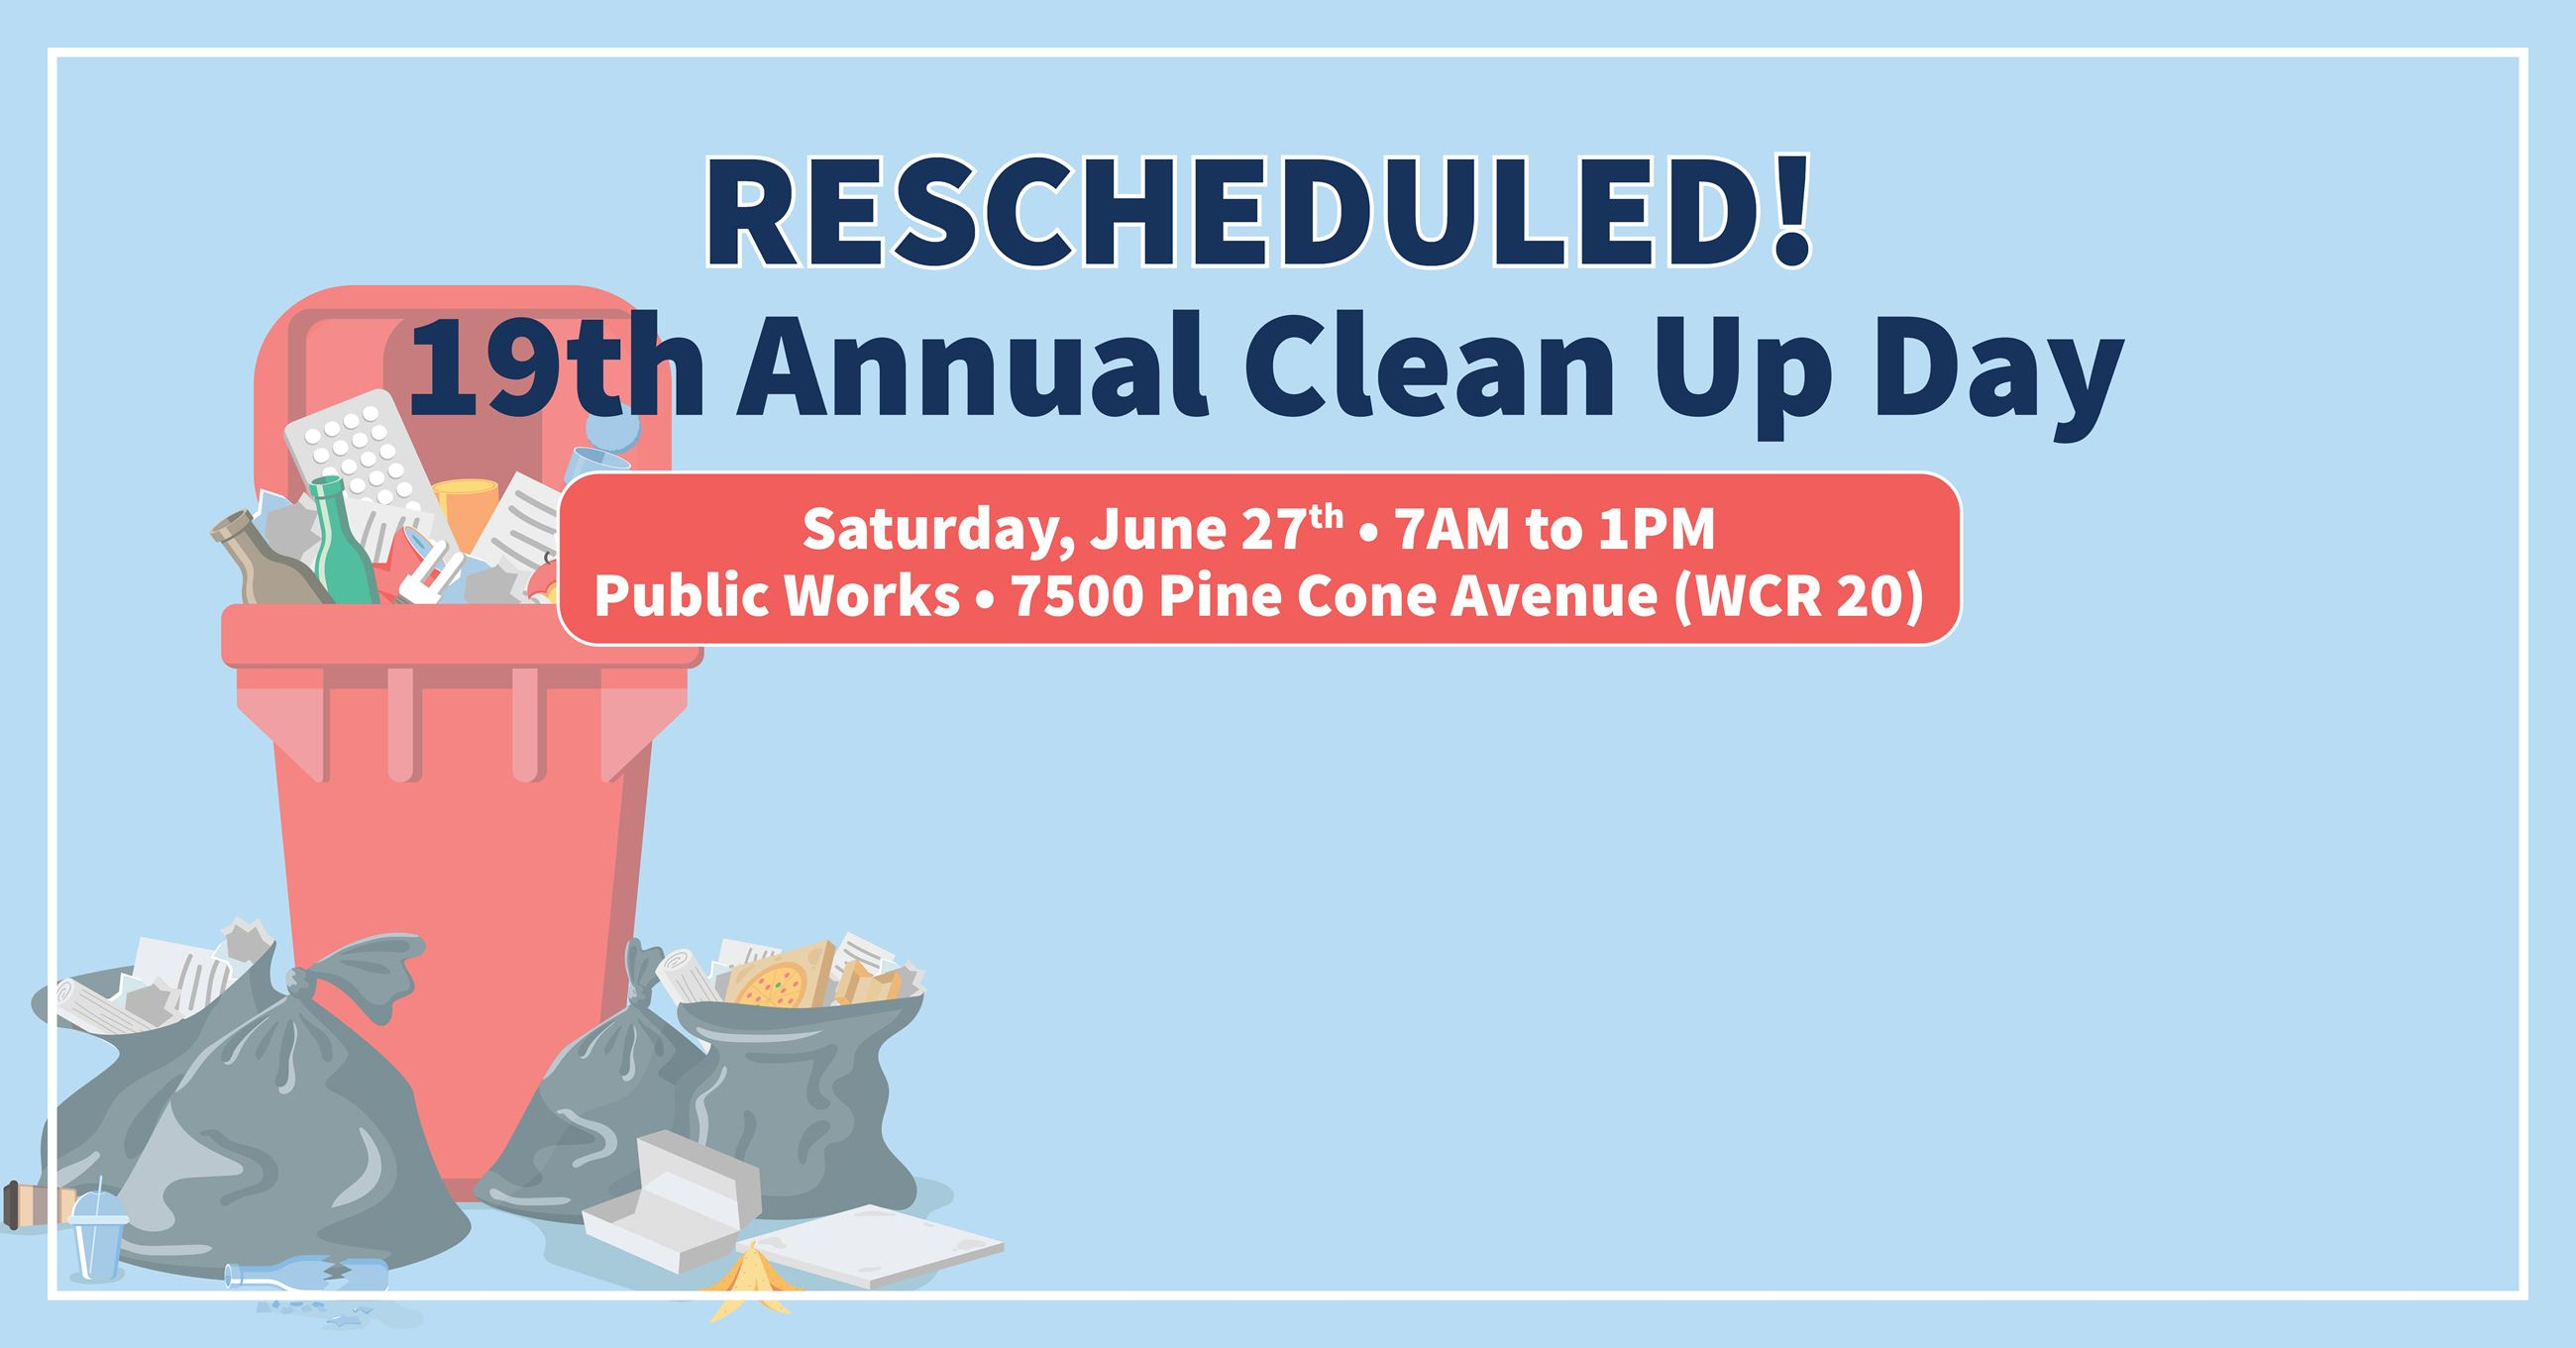 CleanUpDay_Rescheduled_FB